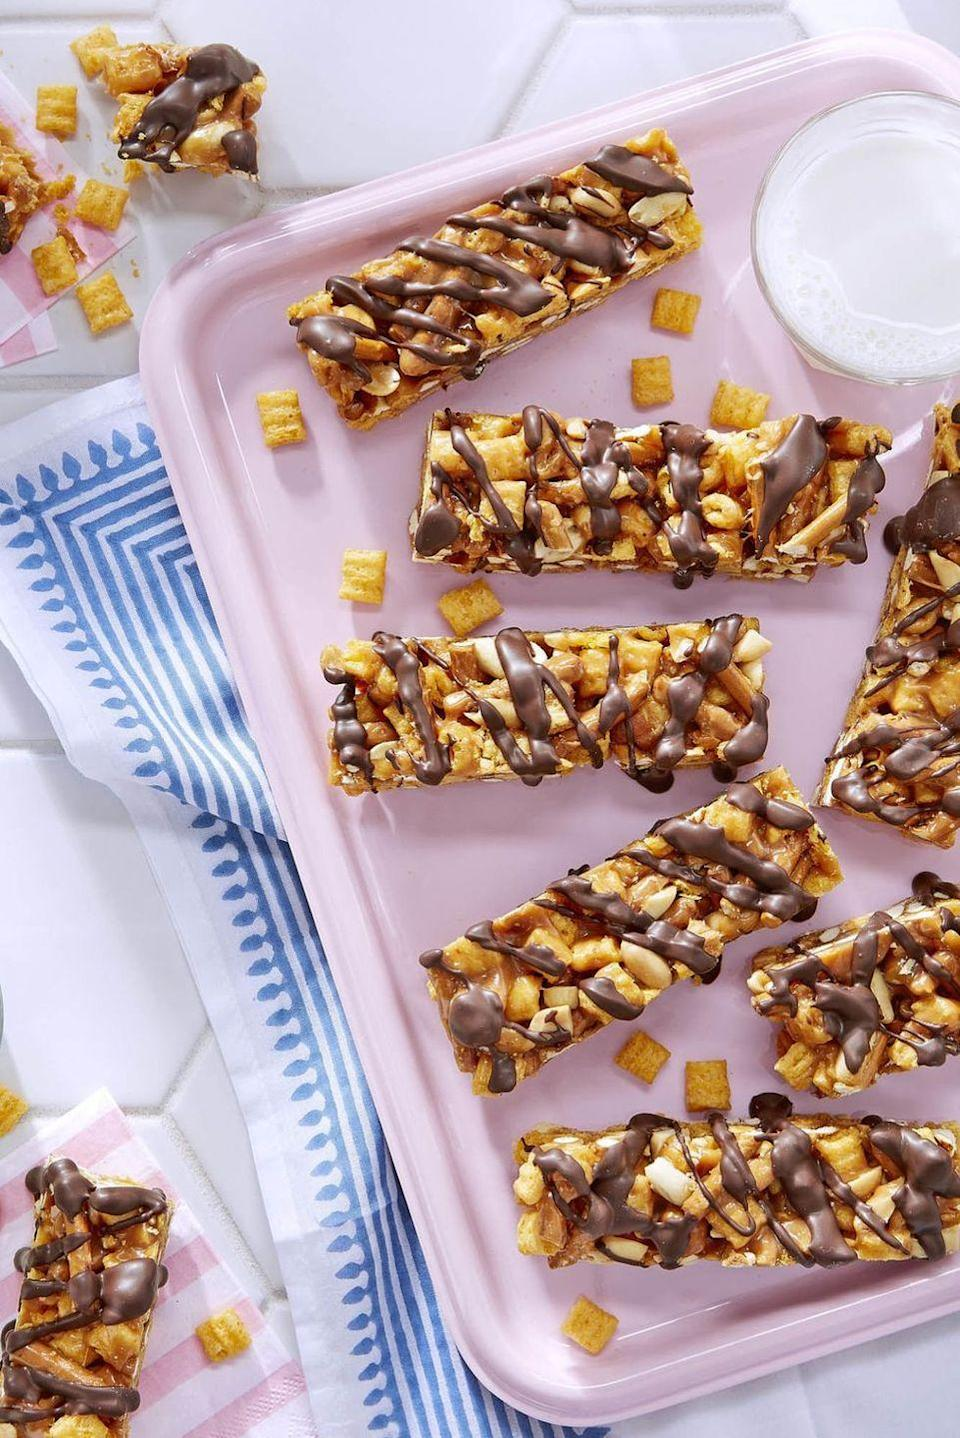 """<p>Turn your favorite childhood cereal into a salty, sweet and crunchy bar that's perfect for packing as a snack!</p><p><em><a href=""""https://www.countryliving.com/food-drinks/recipes/a46344/peanutty-capn-crunch-candy-bars-recipe/"""" rel=""""nofollow noopener"""" target=""""_blank"""" data-ylk=""""slk:Get the recipe from Country Living »"""" class=""""link rapid-noclick-resp"""">Get the recipe from Country Living »</a></em></p>"""